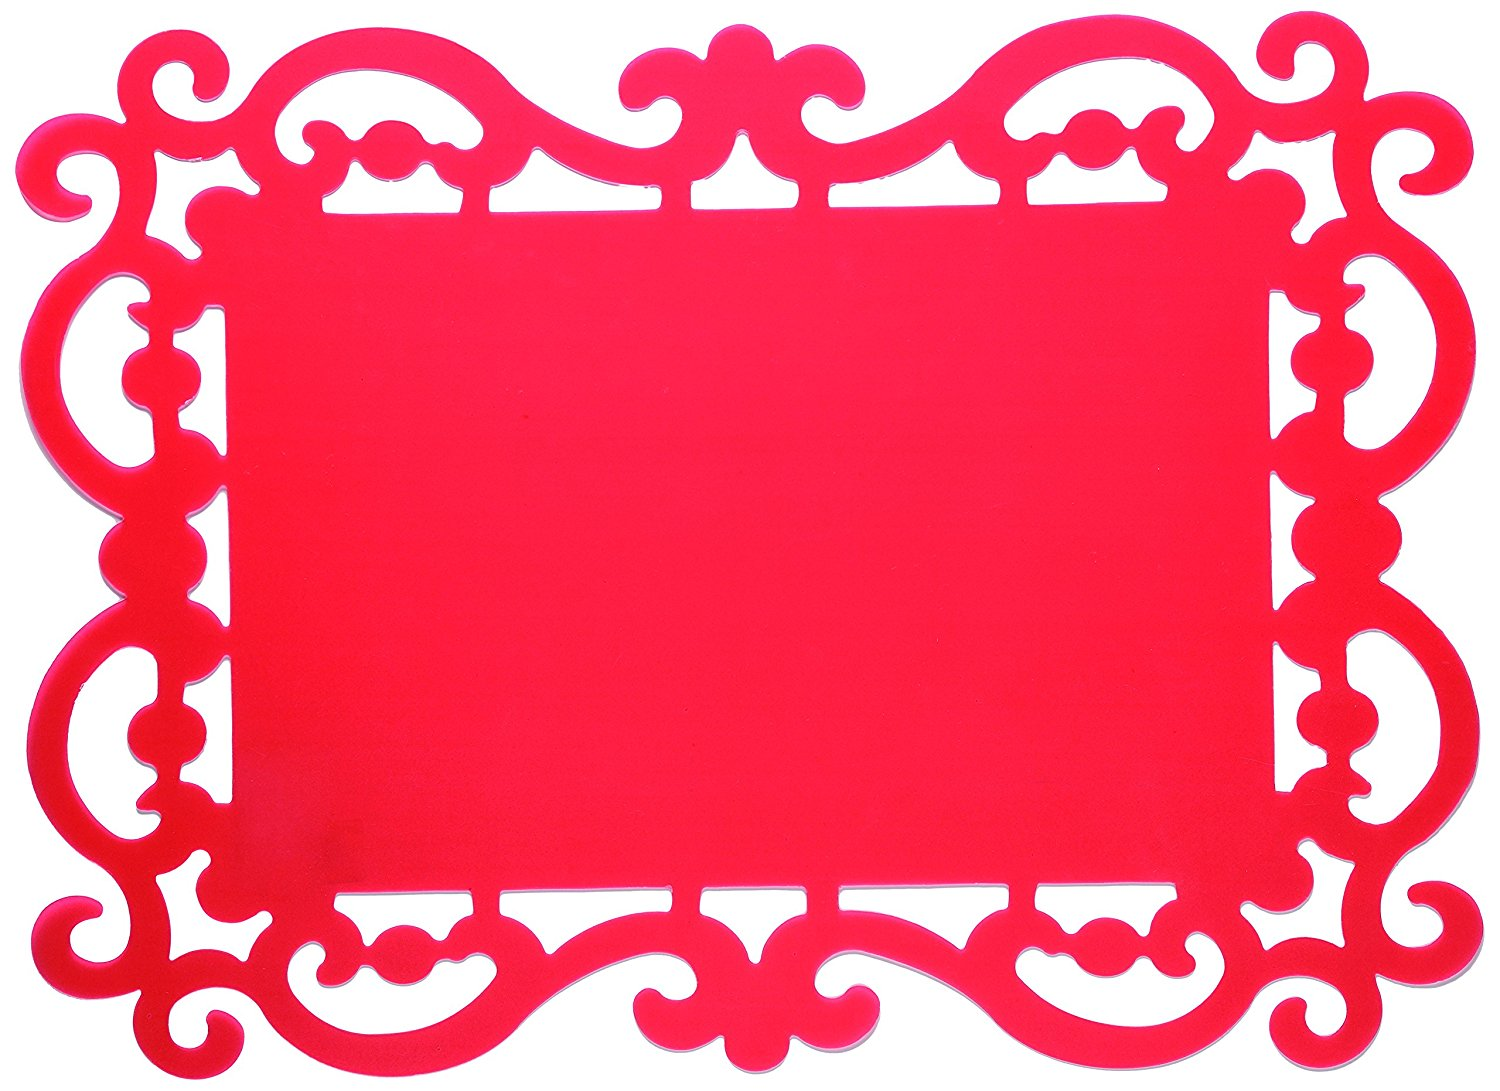 Ornate Frame Silhouette at GetDrawings.com | Free for personal use ...